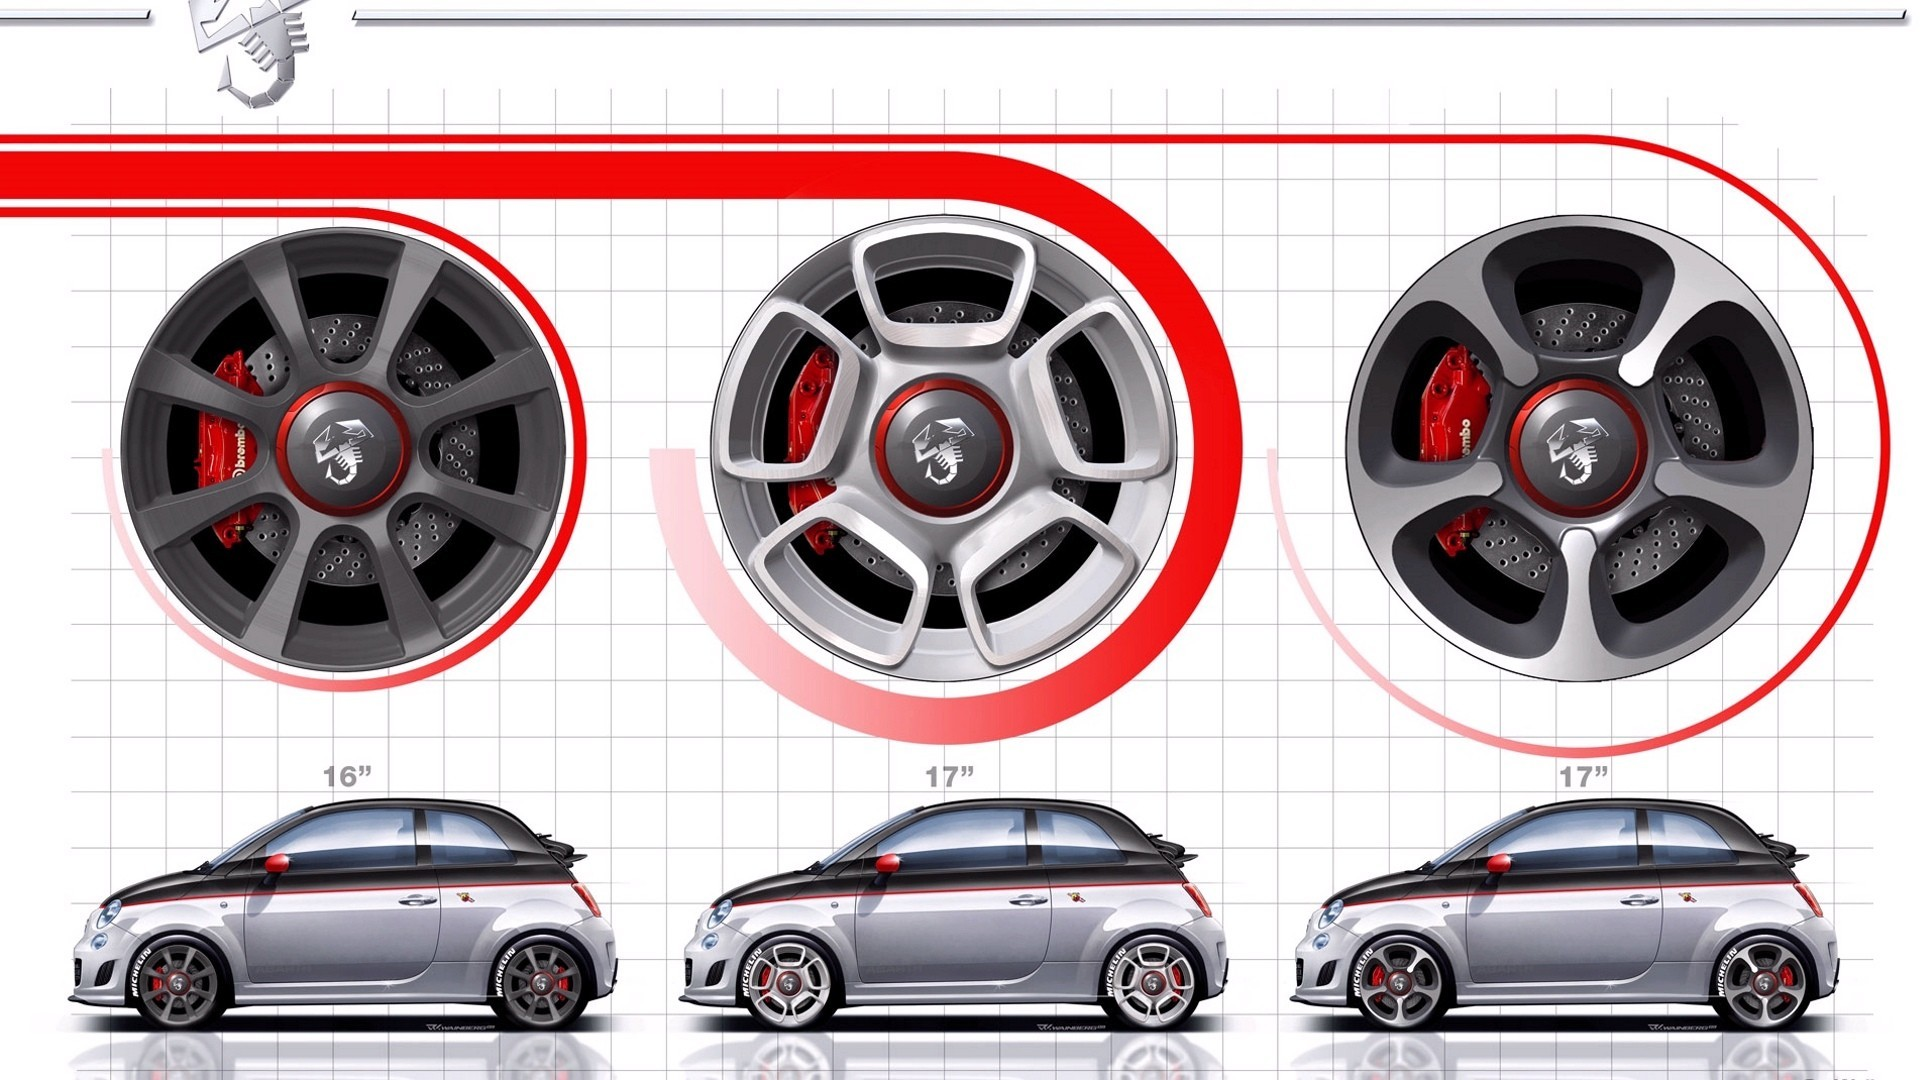 Fiat 500 Rims cars HD Wallpaper